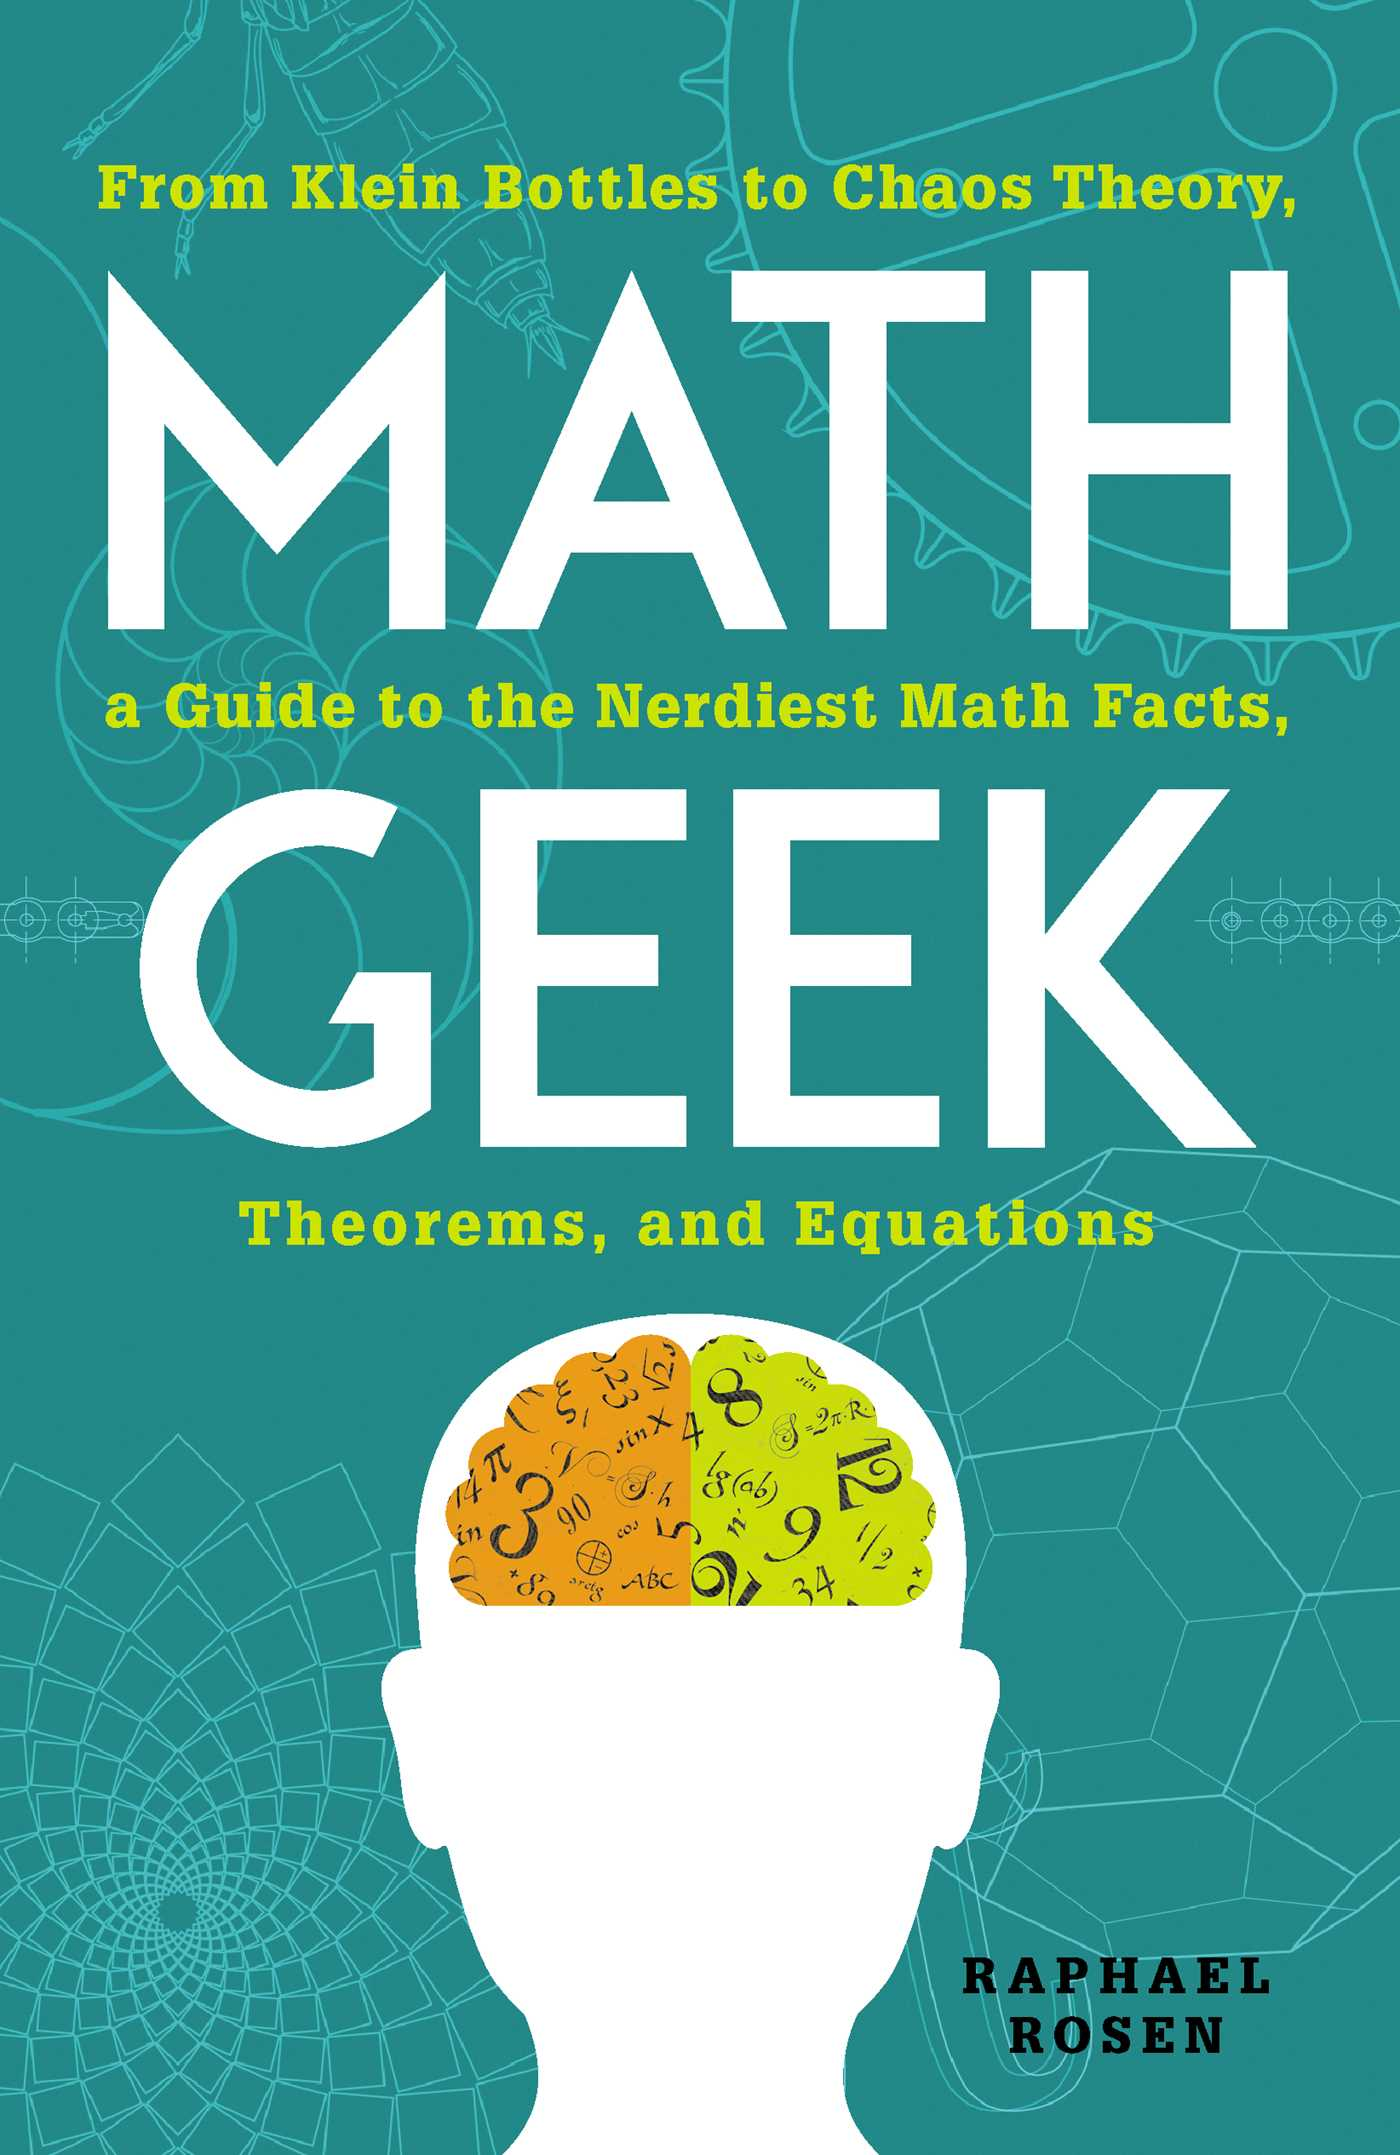 Math Geek | Book by Raphael Rosen | Official Publisher Page | Simon ...